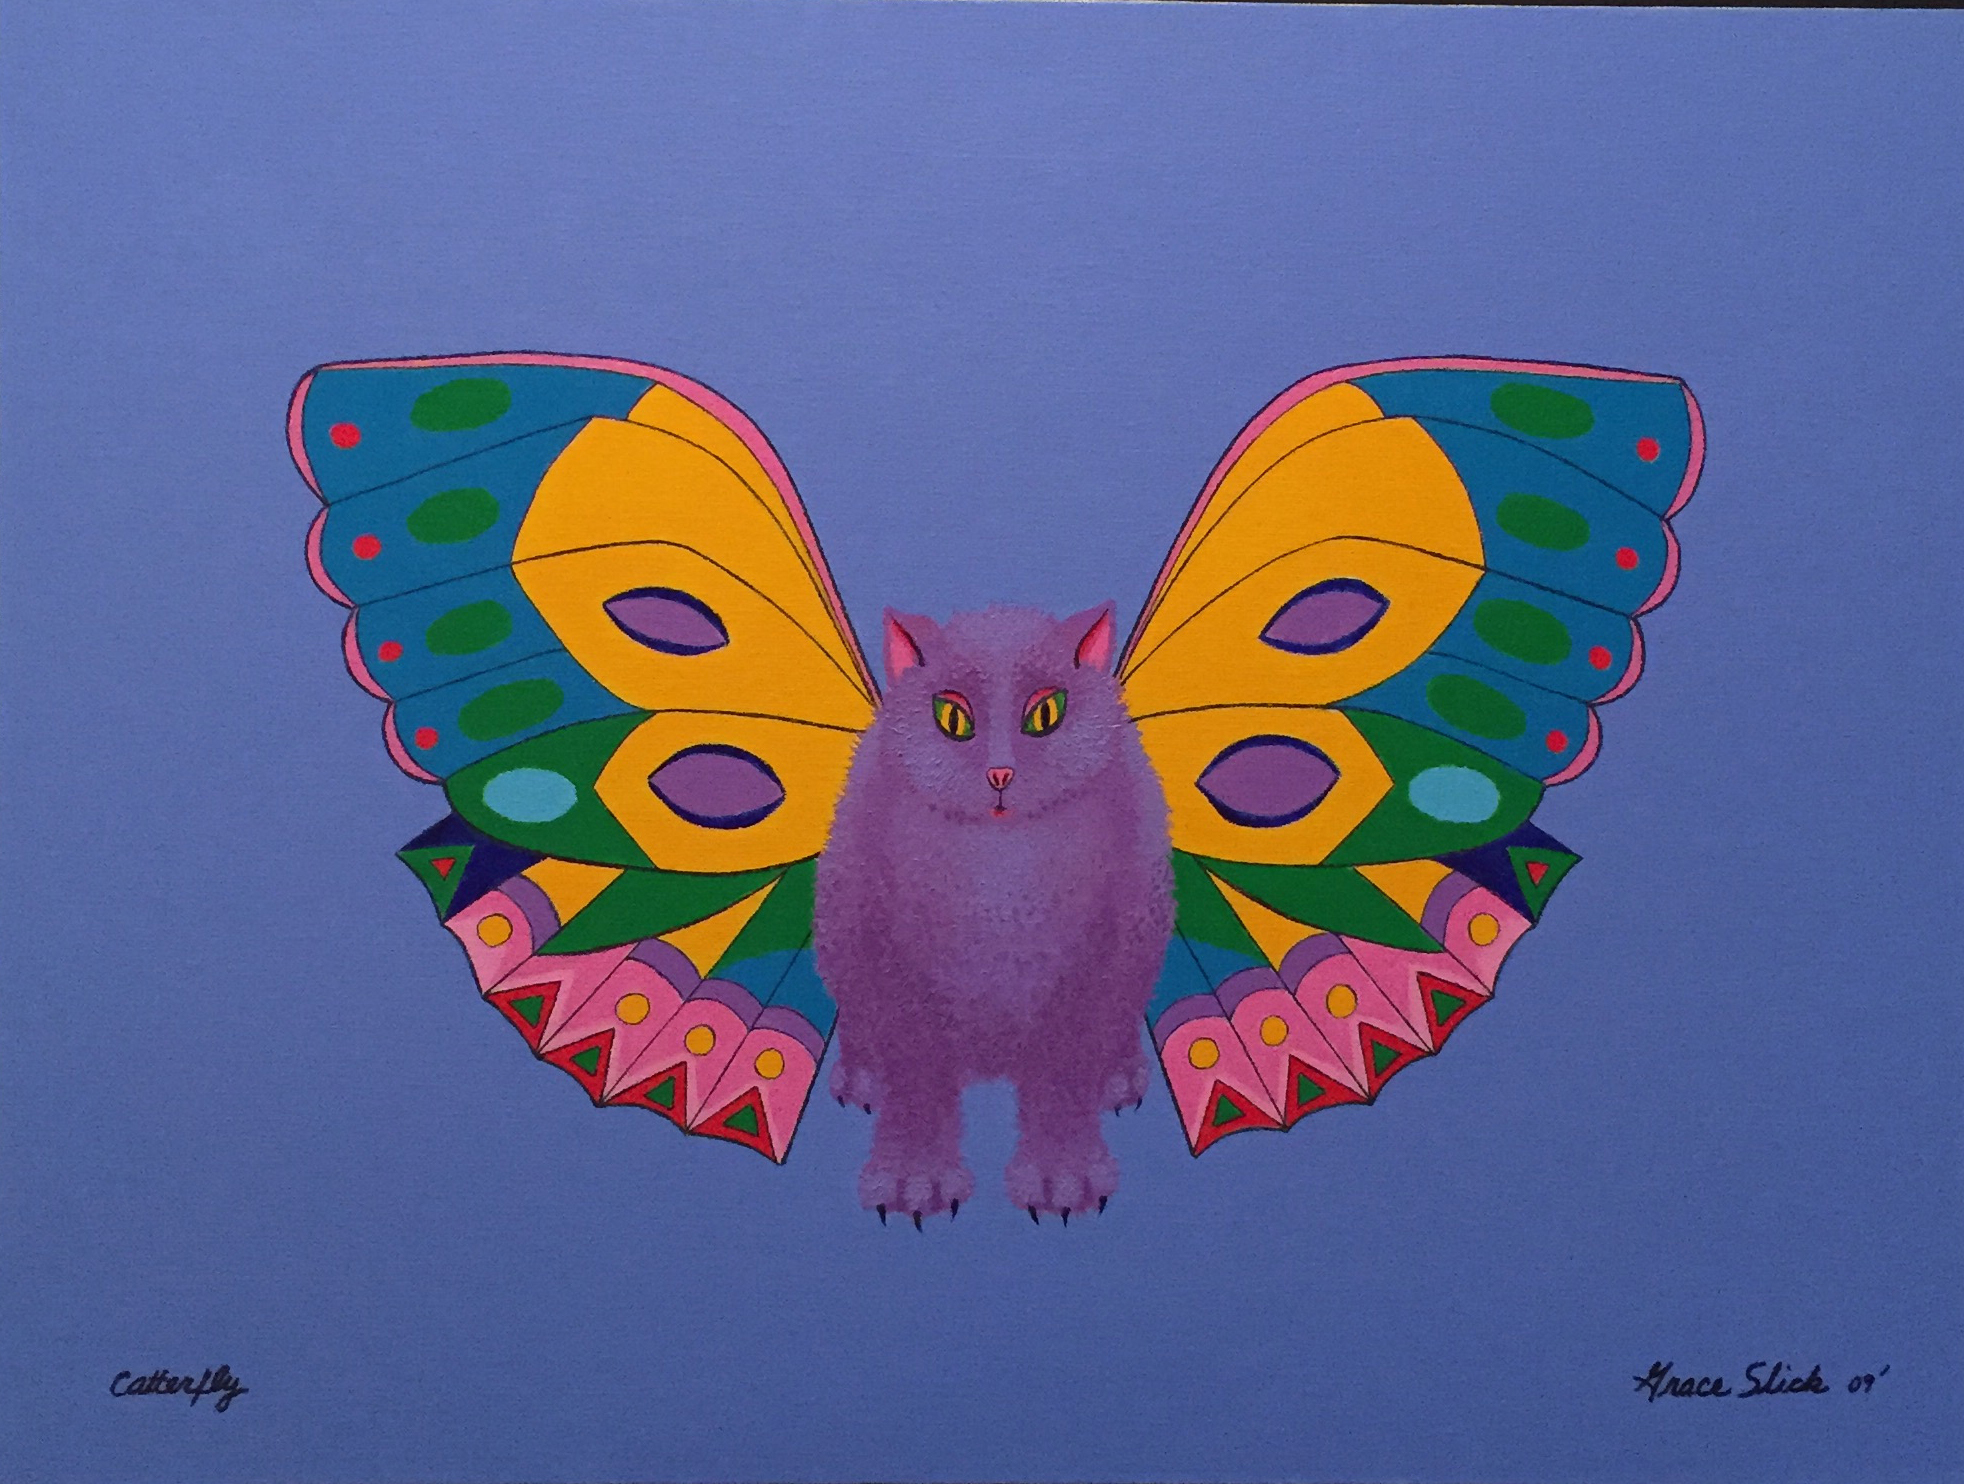 Catterfly 2009 18x24